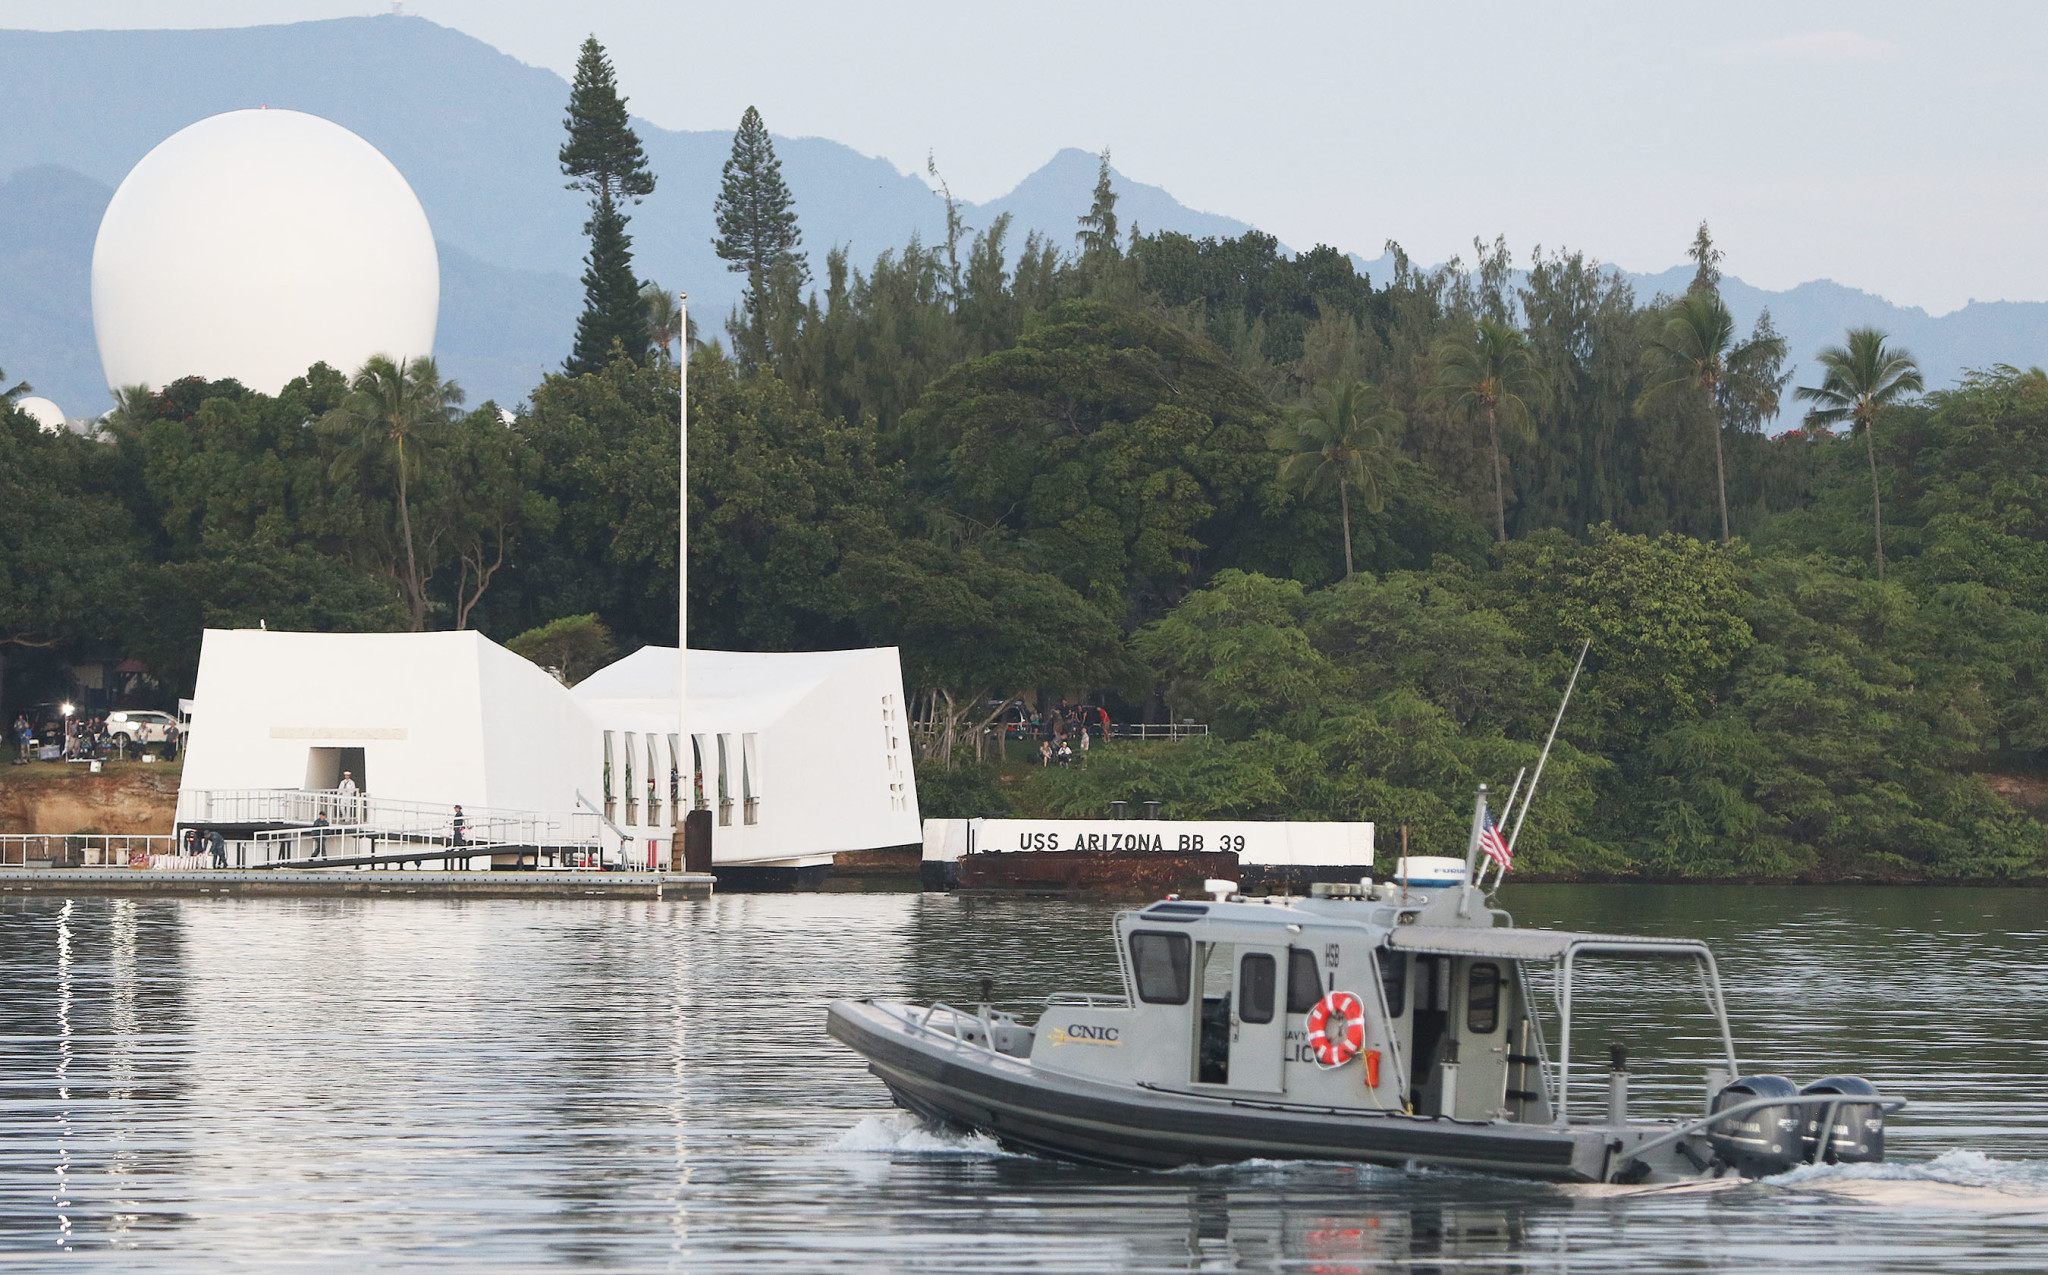 <p>A Navy vessel plied the harbor near the USS Arizona Memorial straddling the wreckage of the battleship where 1,177 sailors and marines died.</p>